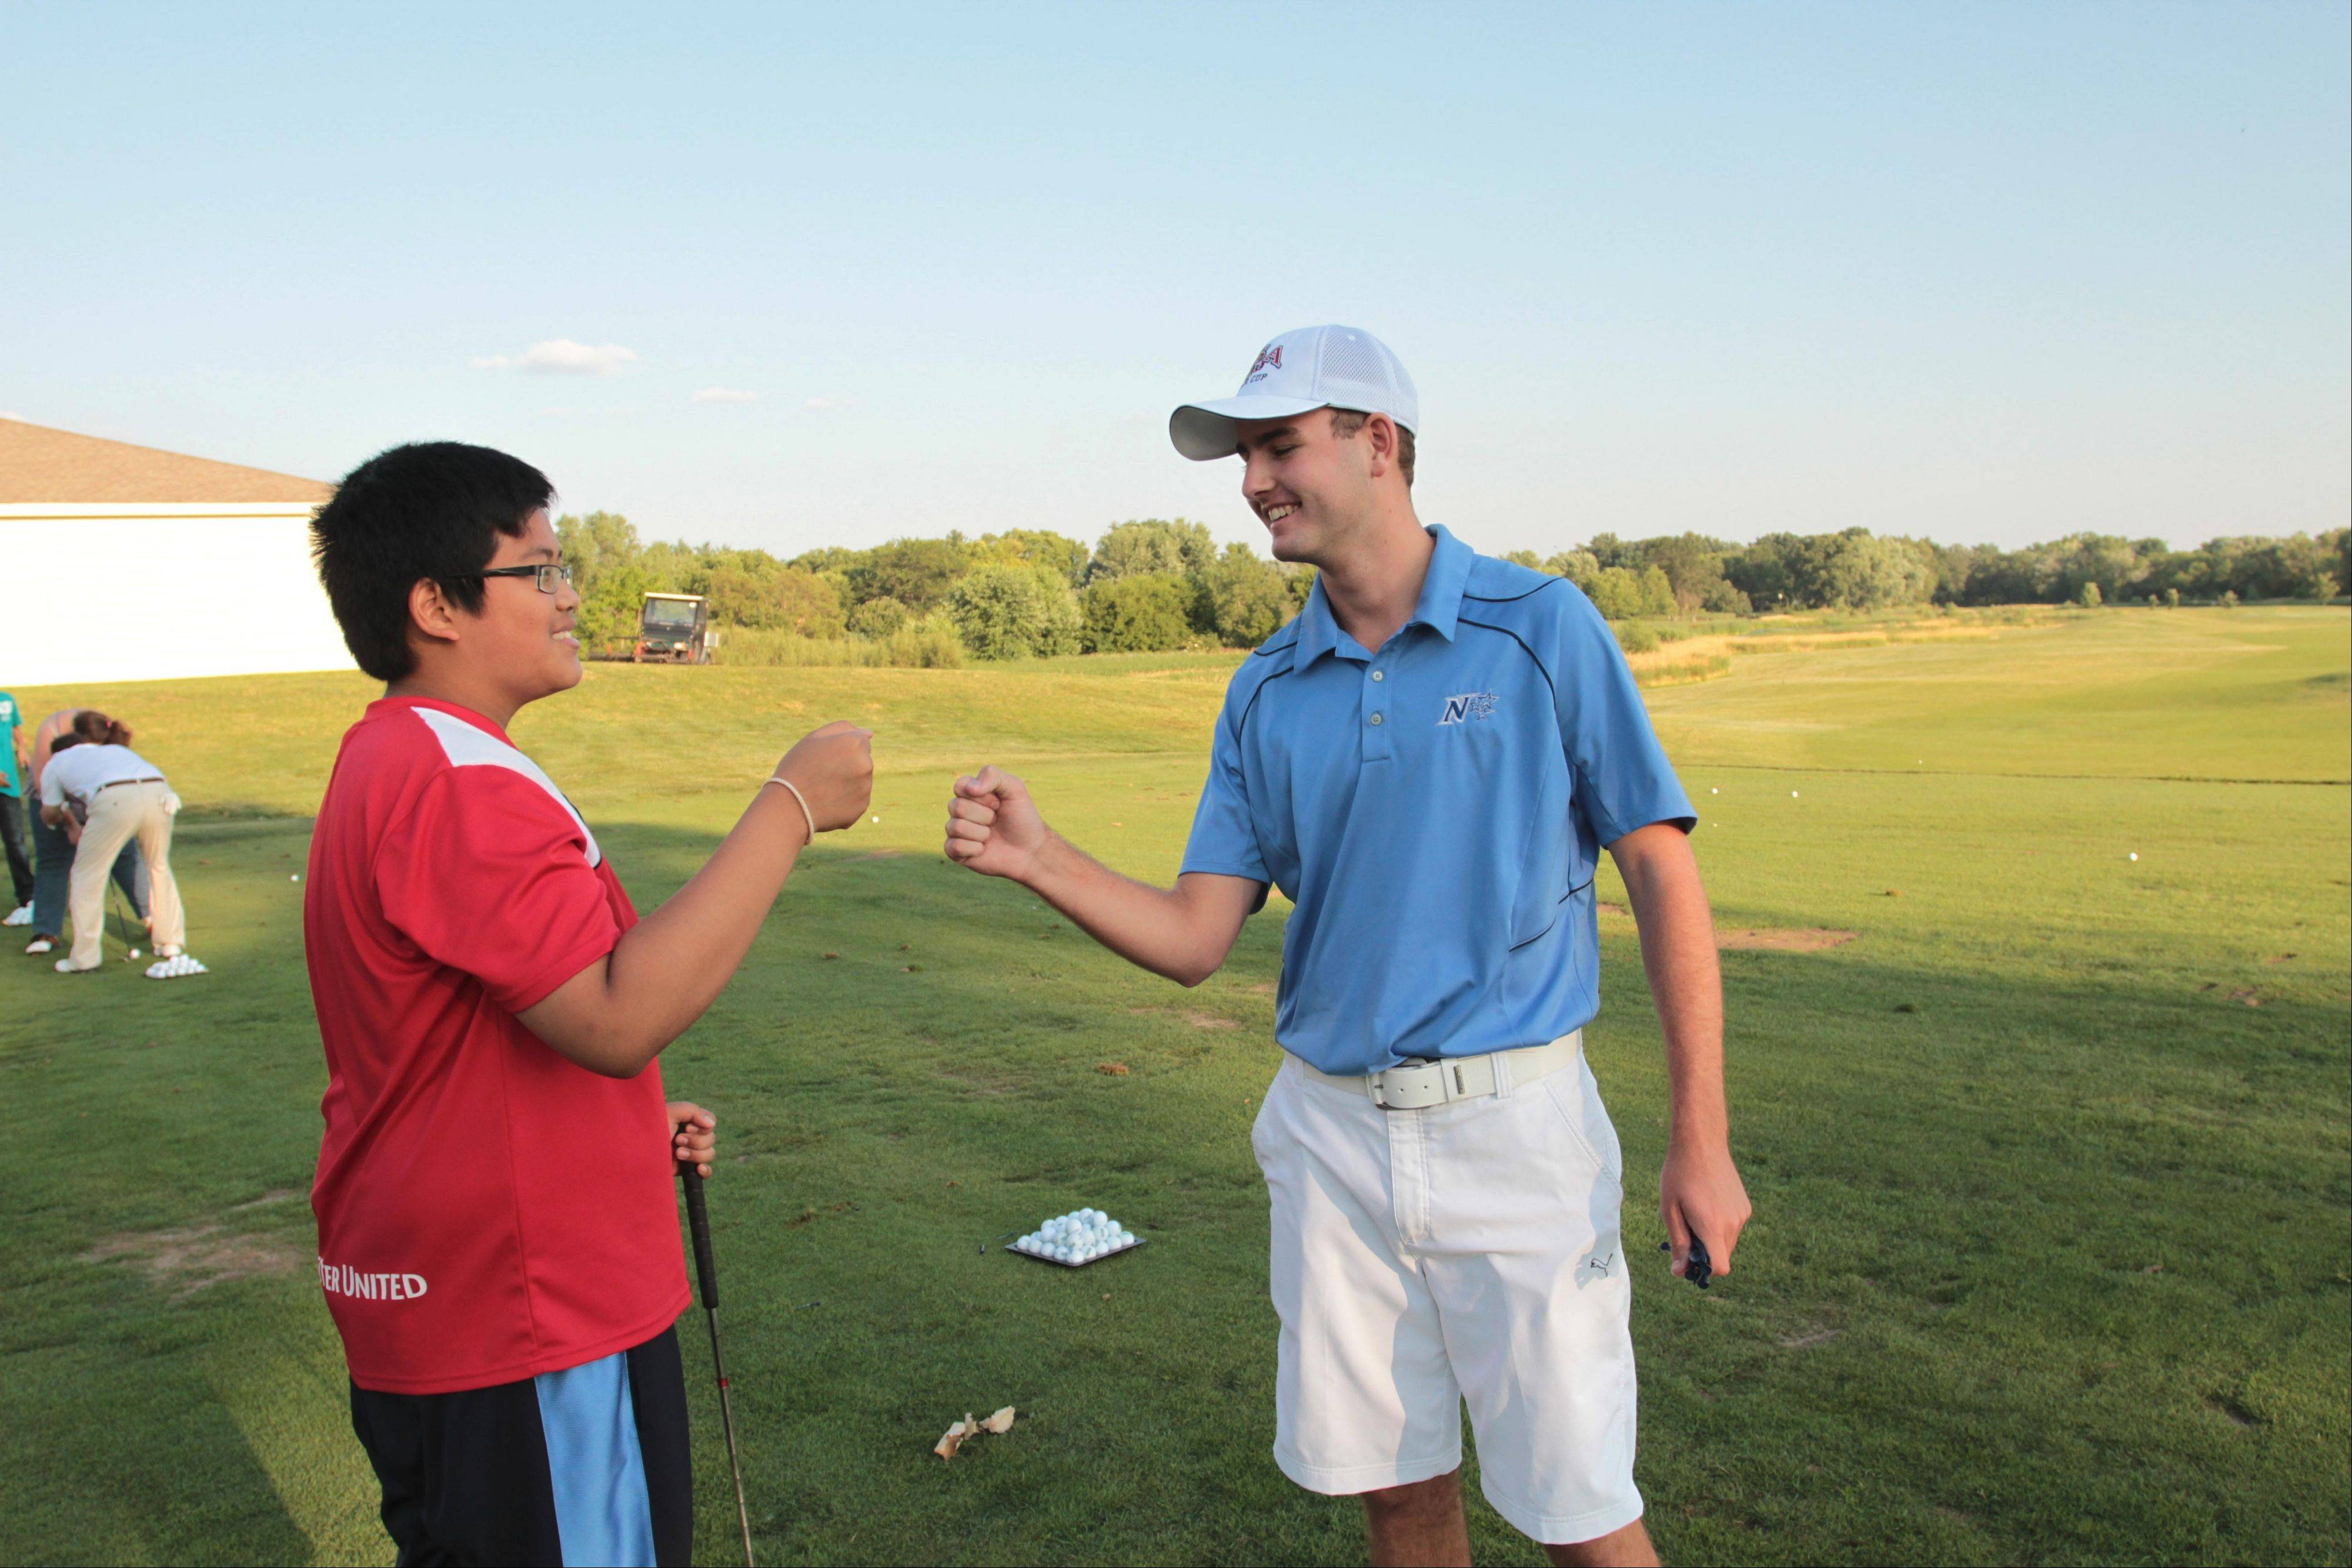 Jeff Phoulavona, left, appreciates the lesson from St. Charles North High School graduate Ryan Del Degan at the PGA Medalist Golf Camp.